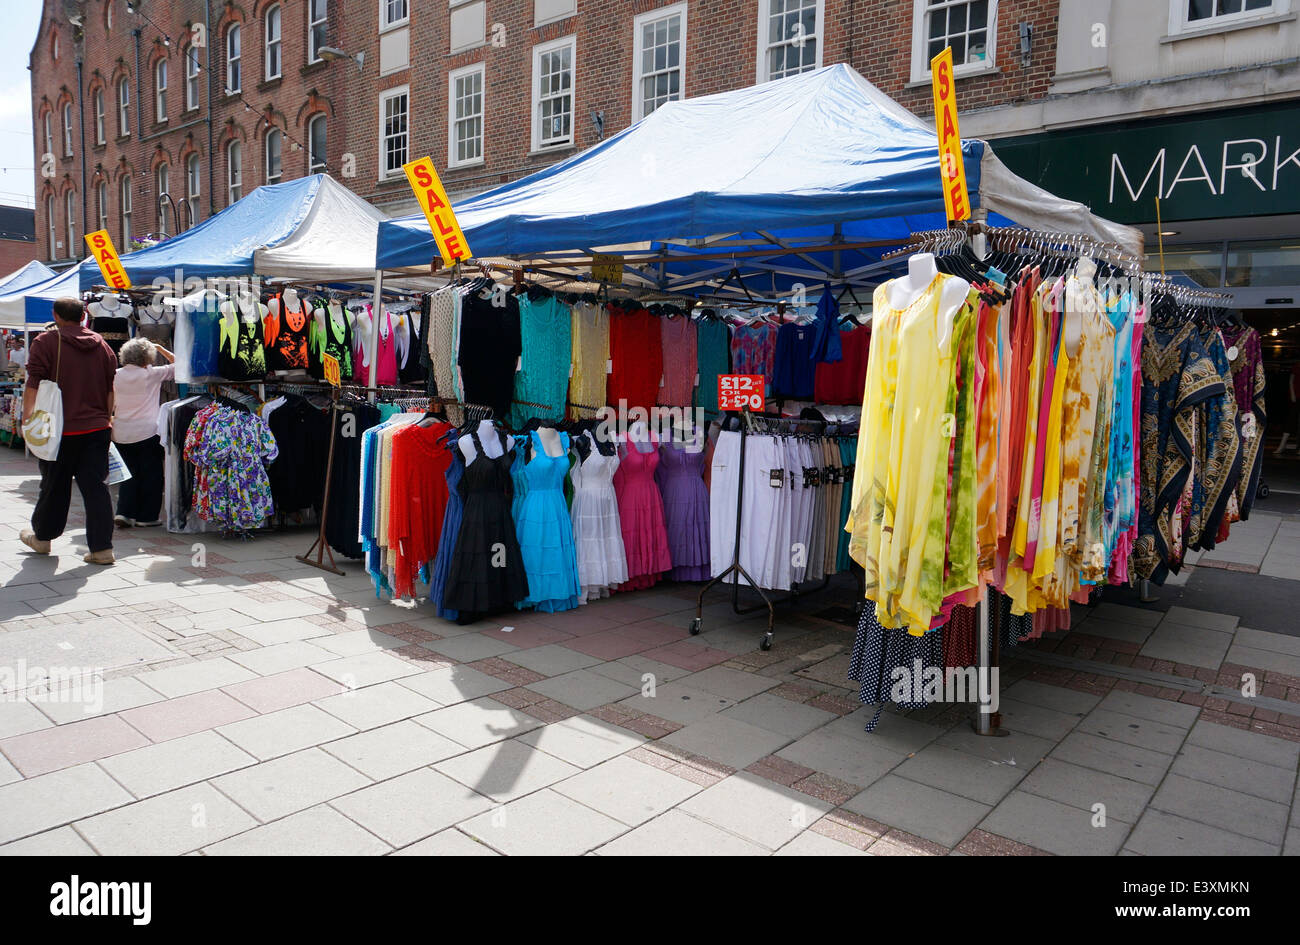 A market stall selling a selection of clothes dresses & cardigans in Worthing precinct pedestrianised area West - Stock Image